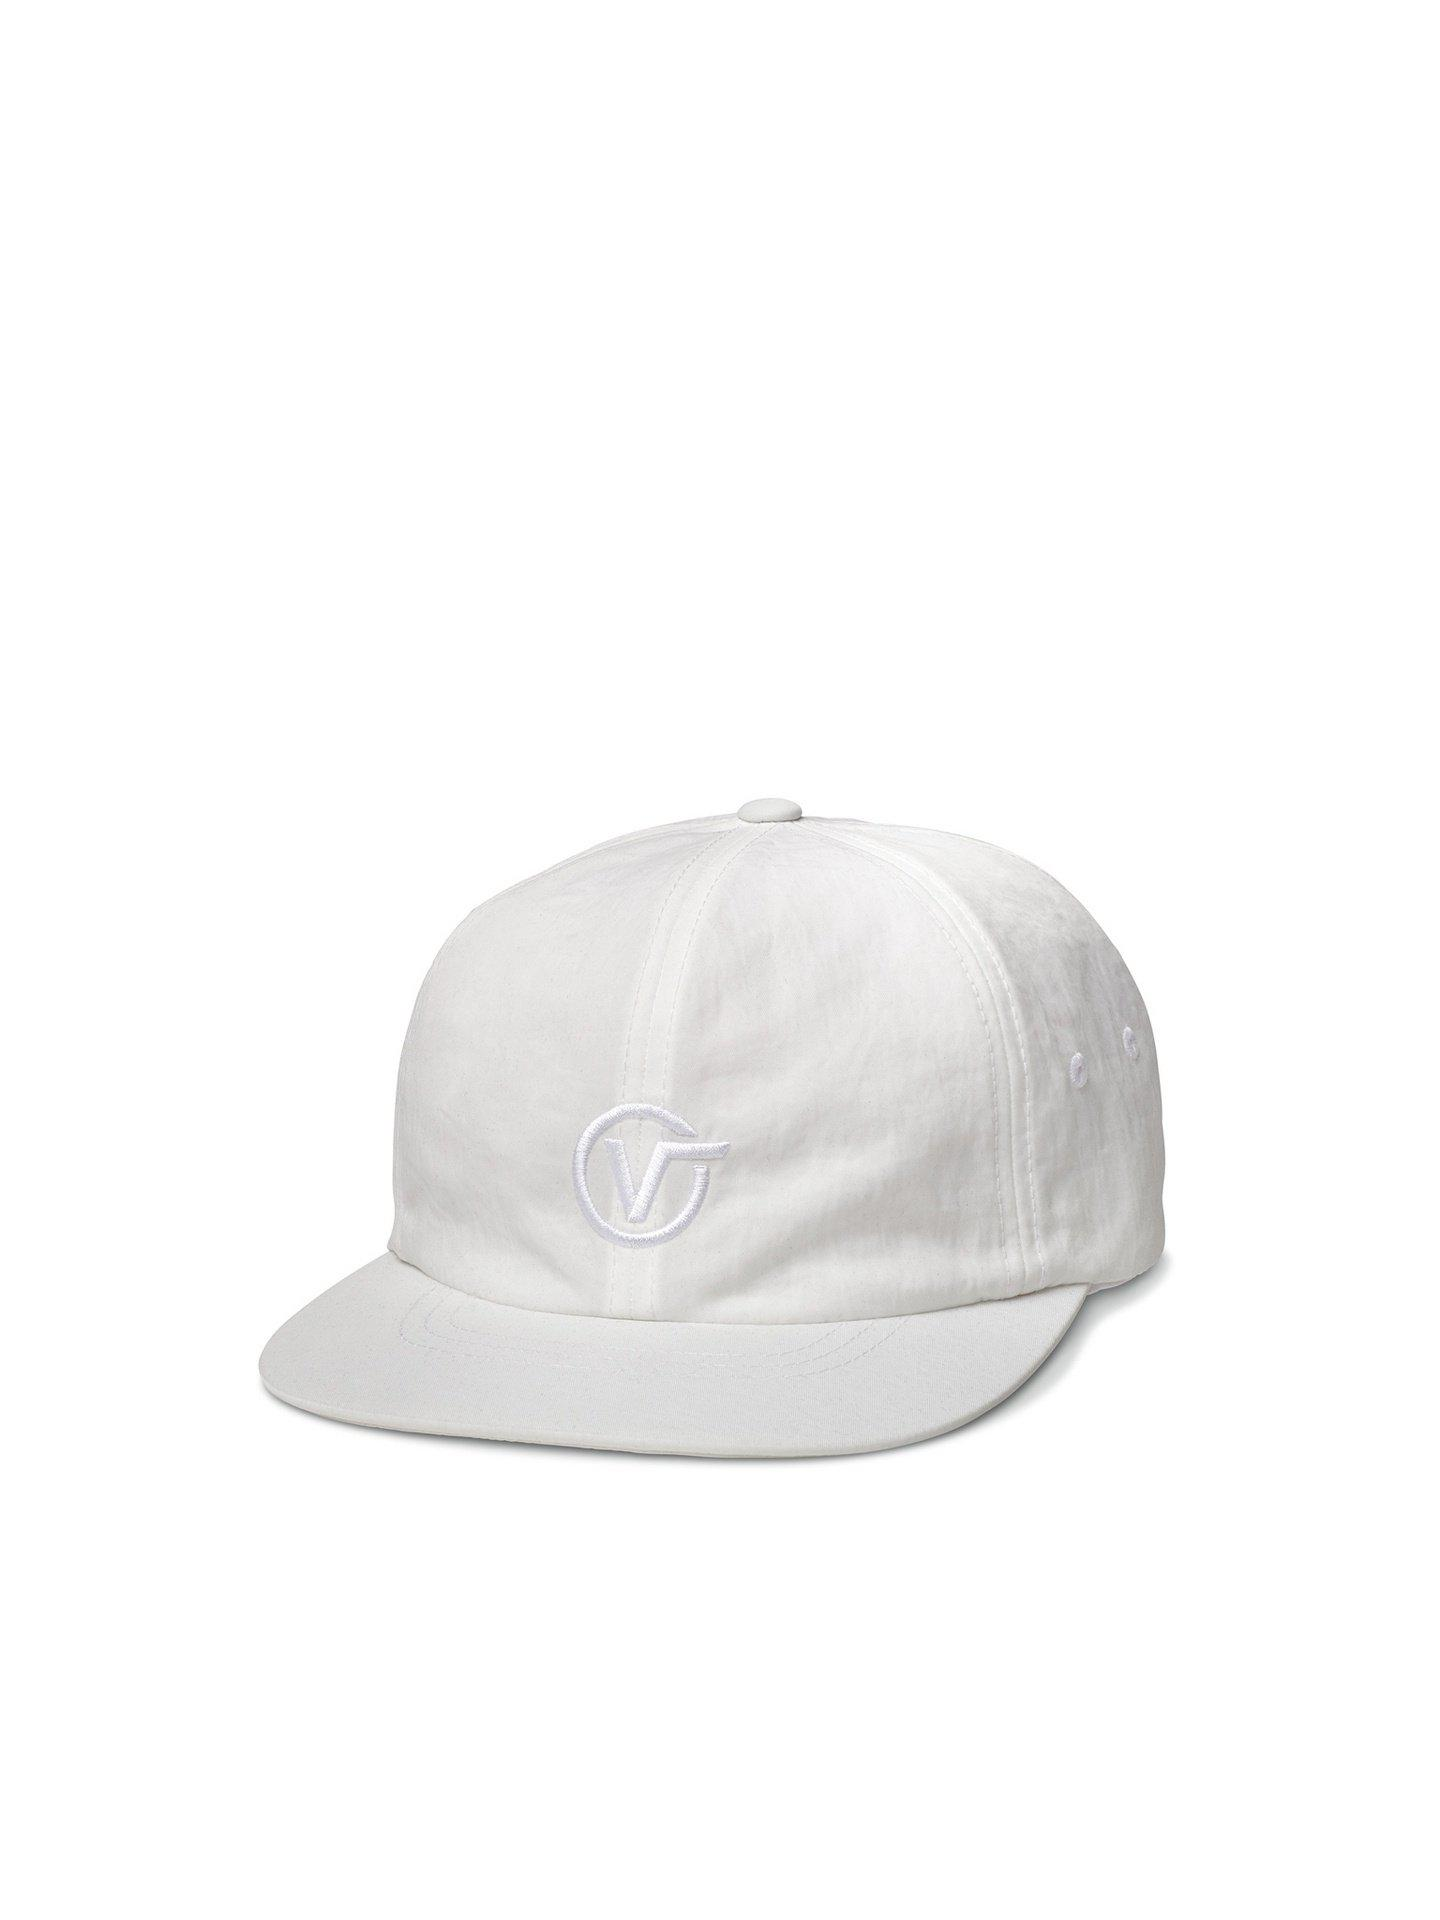 7fc49ecbdae Lyst - Vans Vans X Lqqk Studio Hat in White for Men